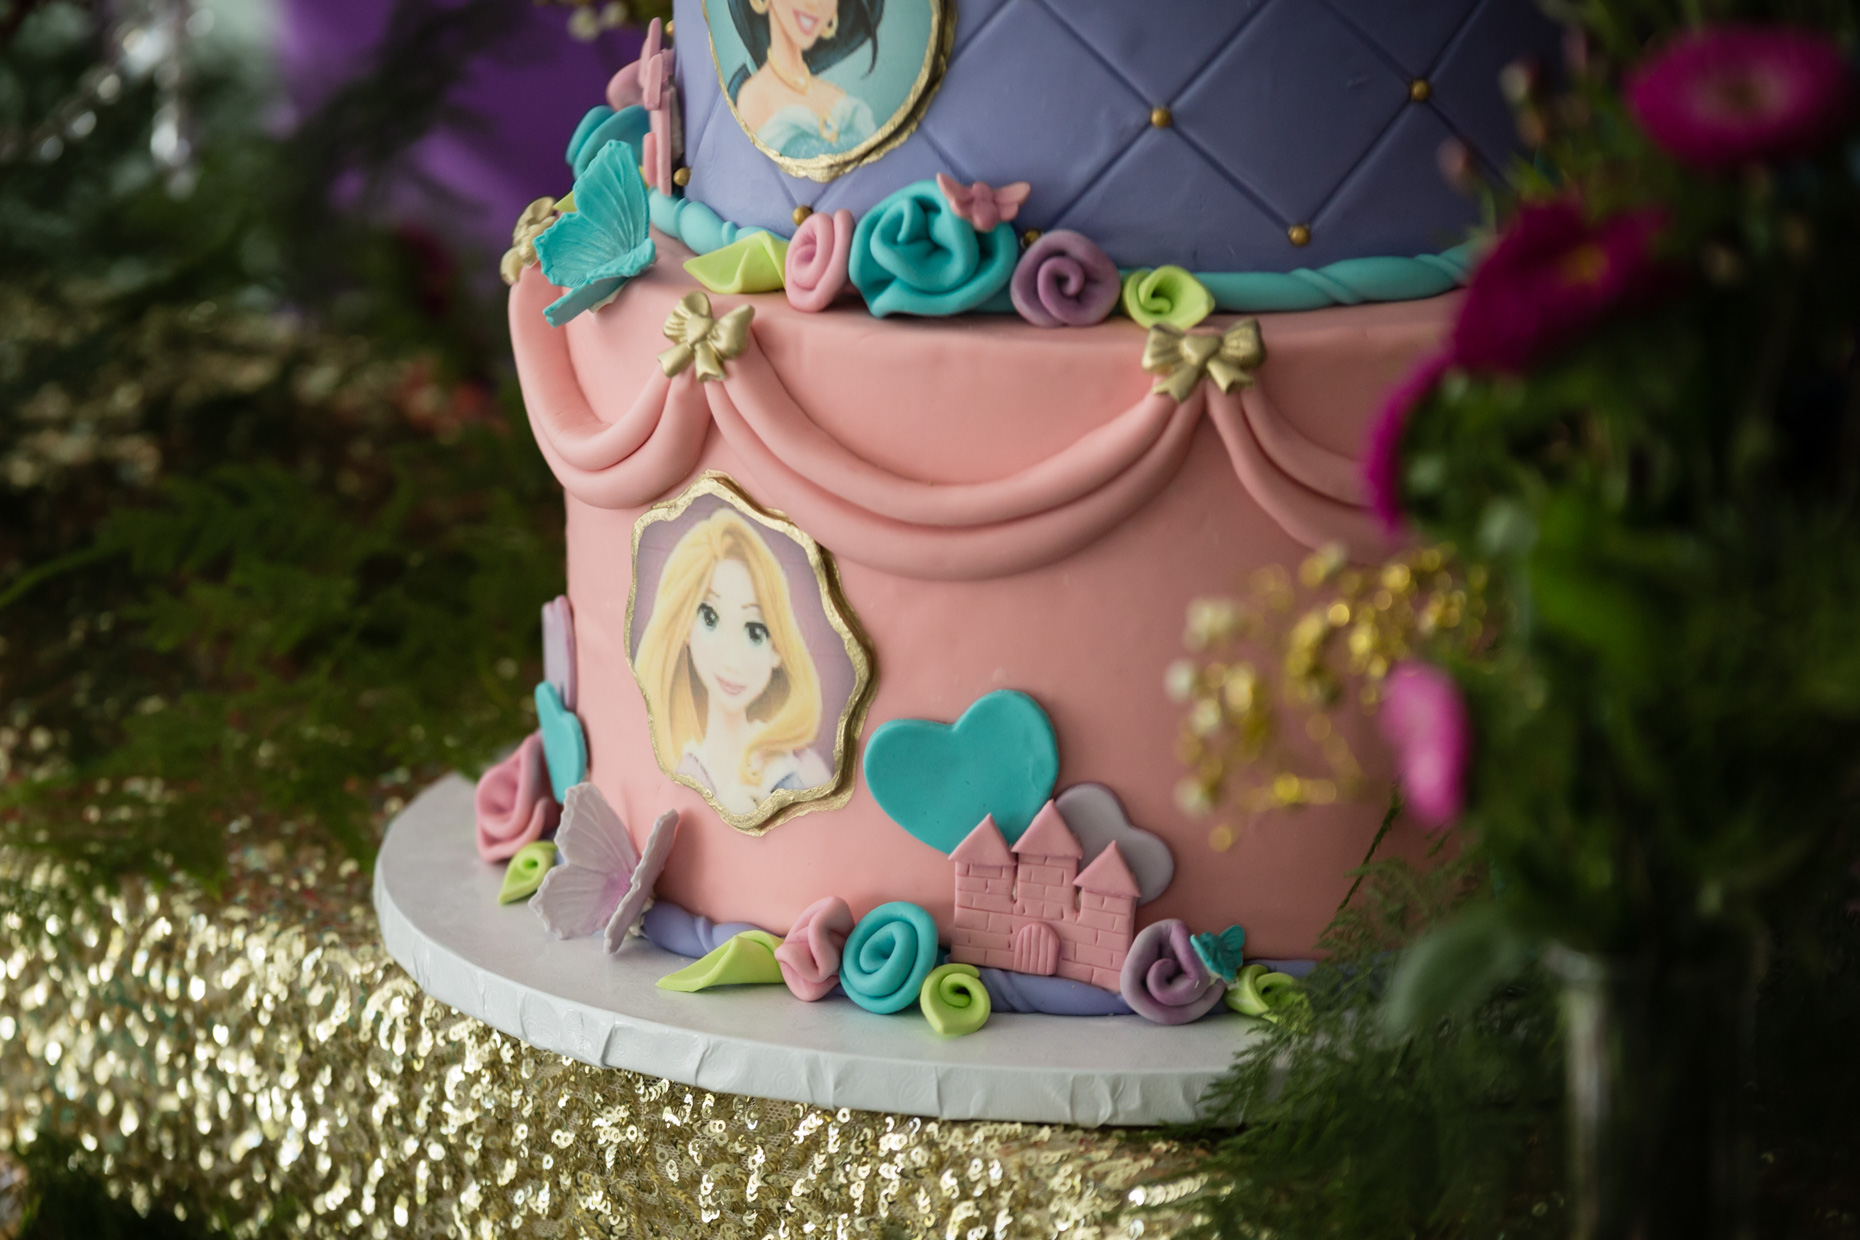 custom princess cake details party planner beverly hills.jpg